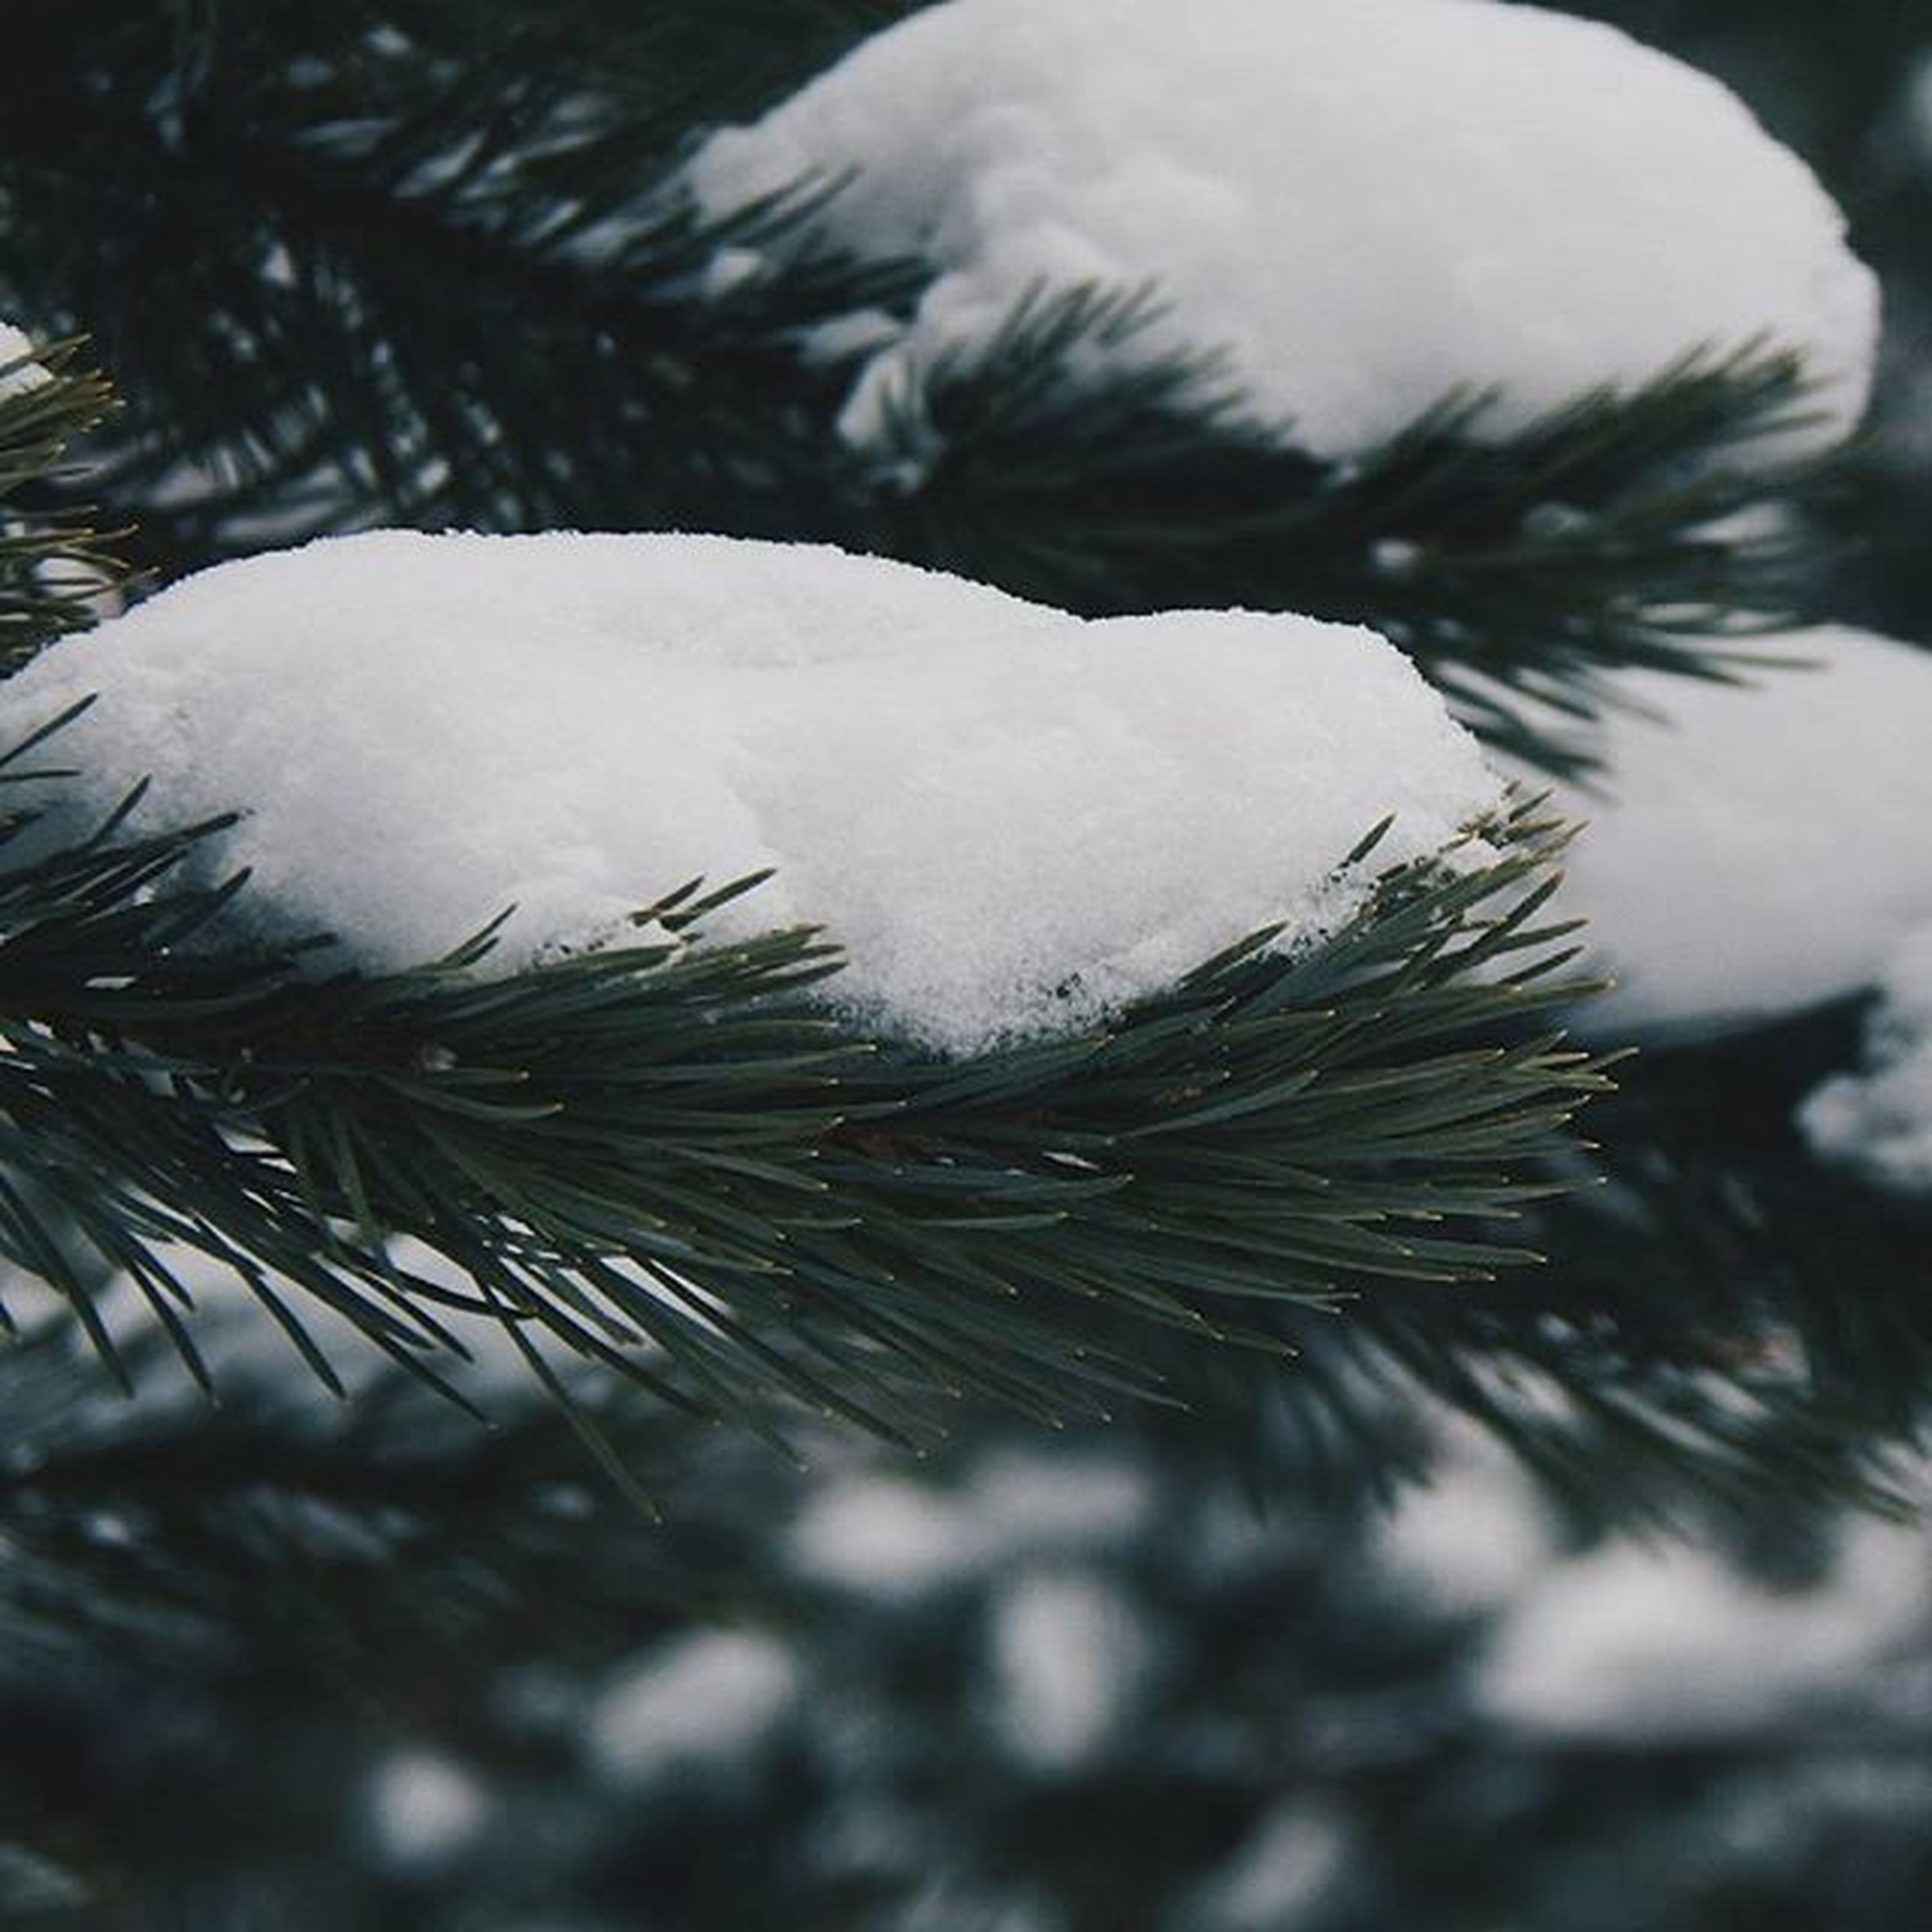 winter, cold temperature, snow, frozen, weather, close-up, white color, season, nature, beauty in nature, focus on foreground, ice, tranquility, growth, white, day, plant, outdoors, fragility, covering